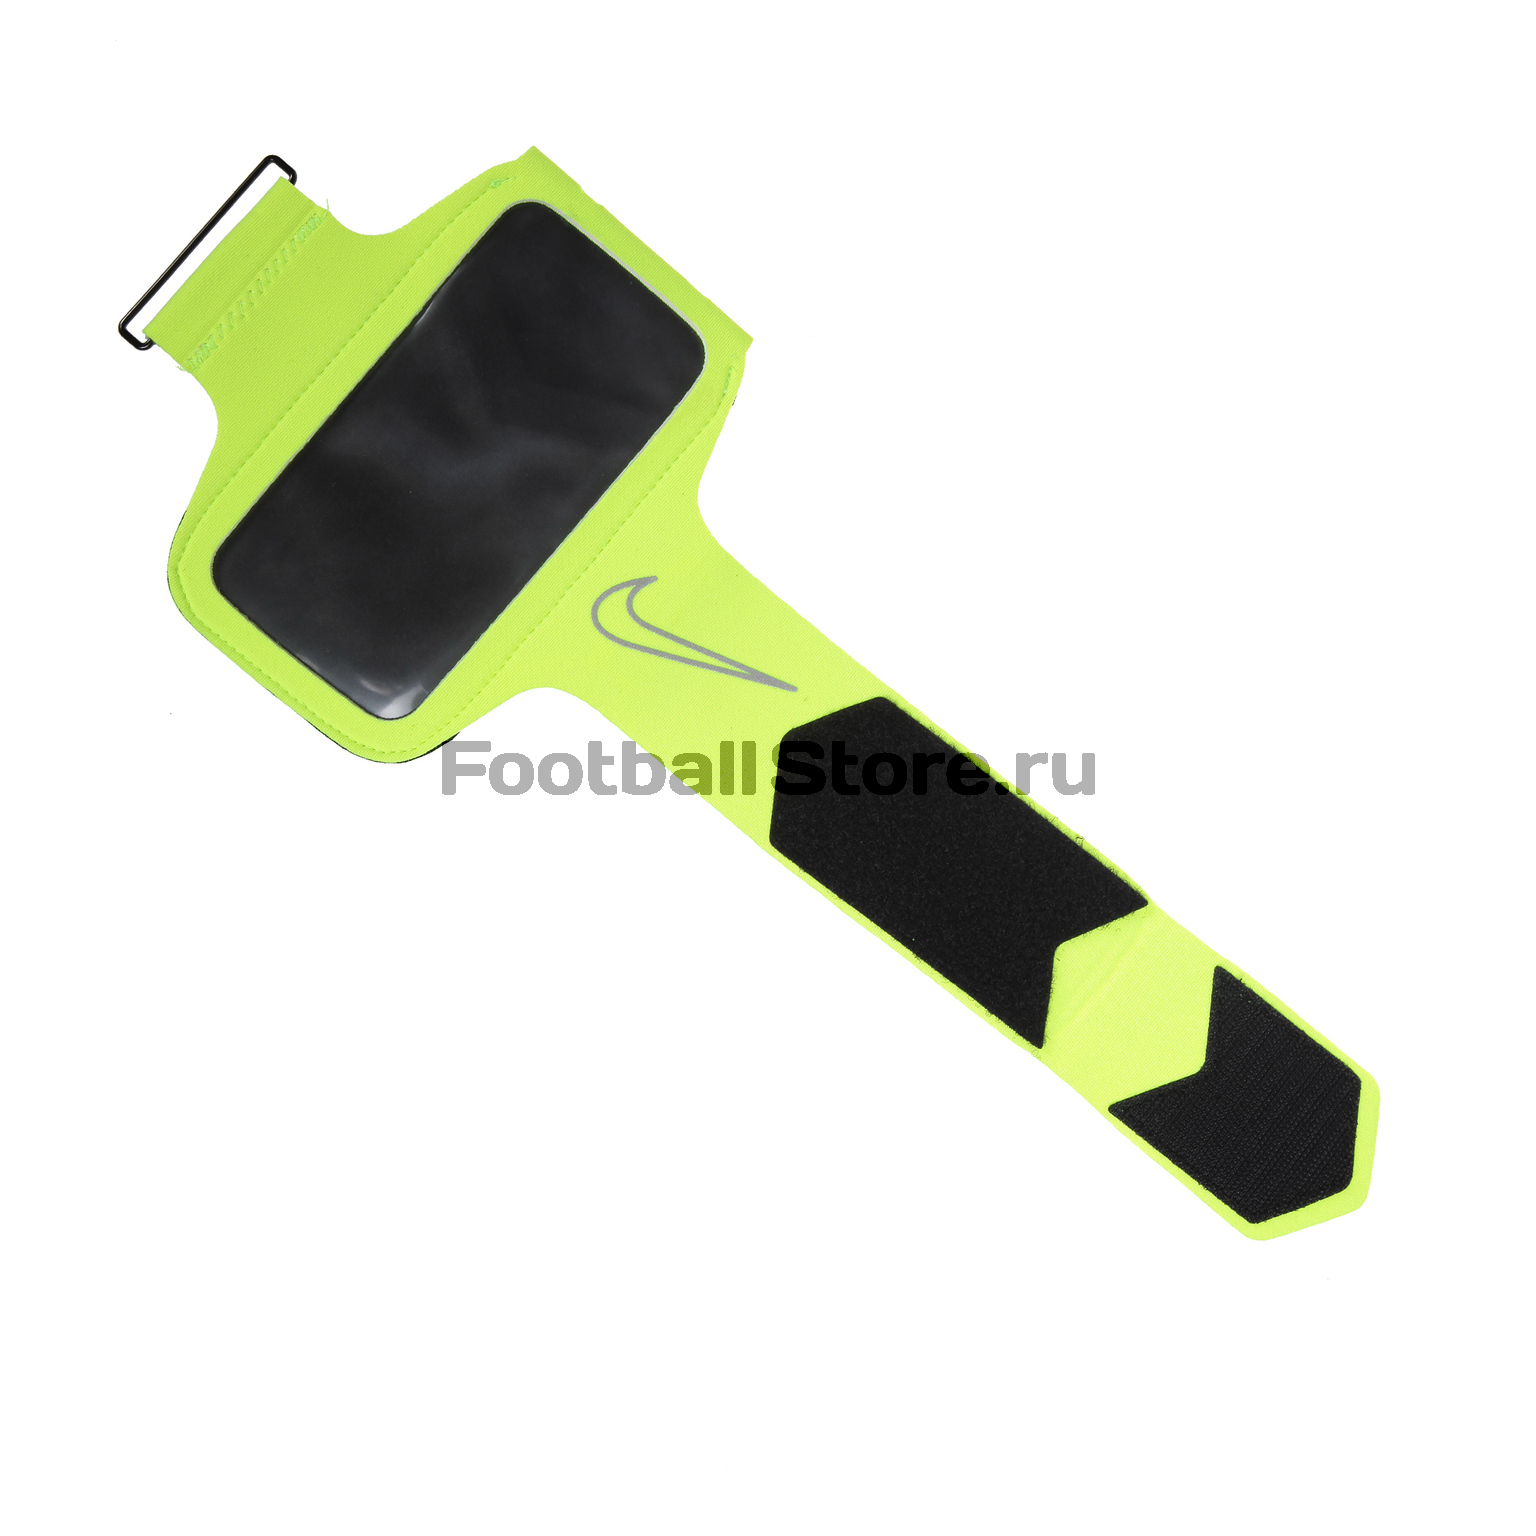 Спортинвентарь Nike Чехол для Iphone 5/5S на руку Nike Lightweight Arm Band 2.0 N.RN.43.715.OS повязки nike капитанская повязка nike arm band n sn 05 101 os